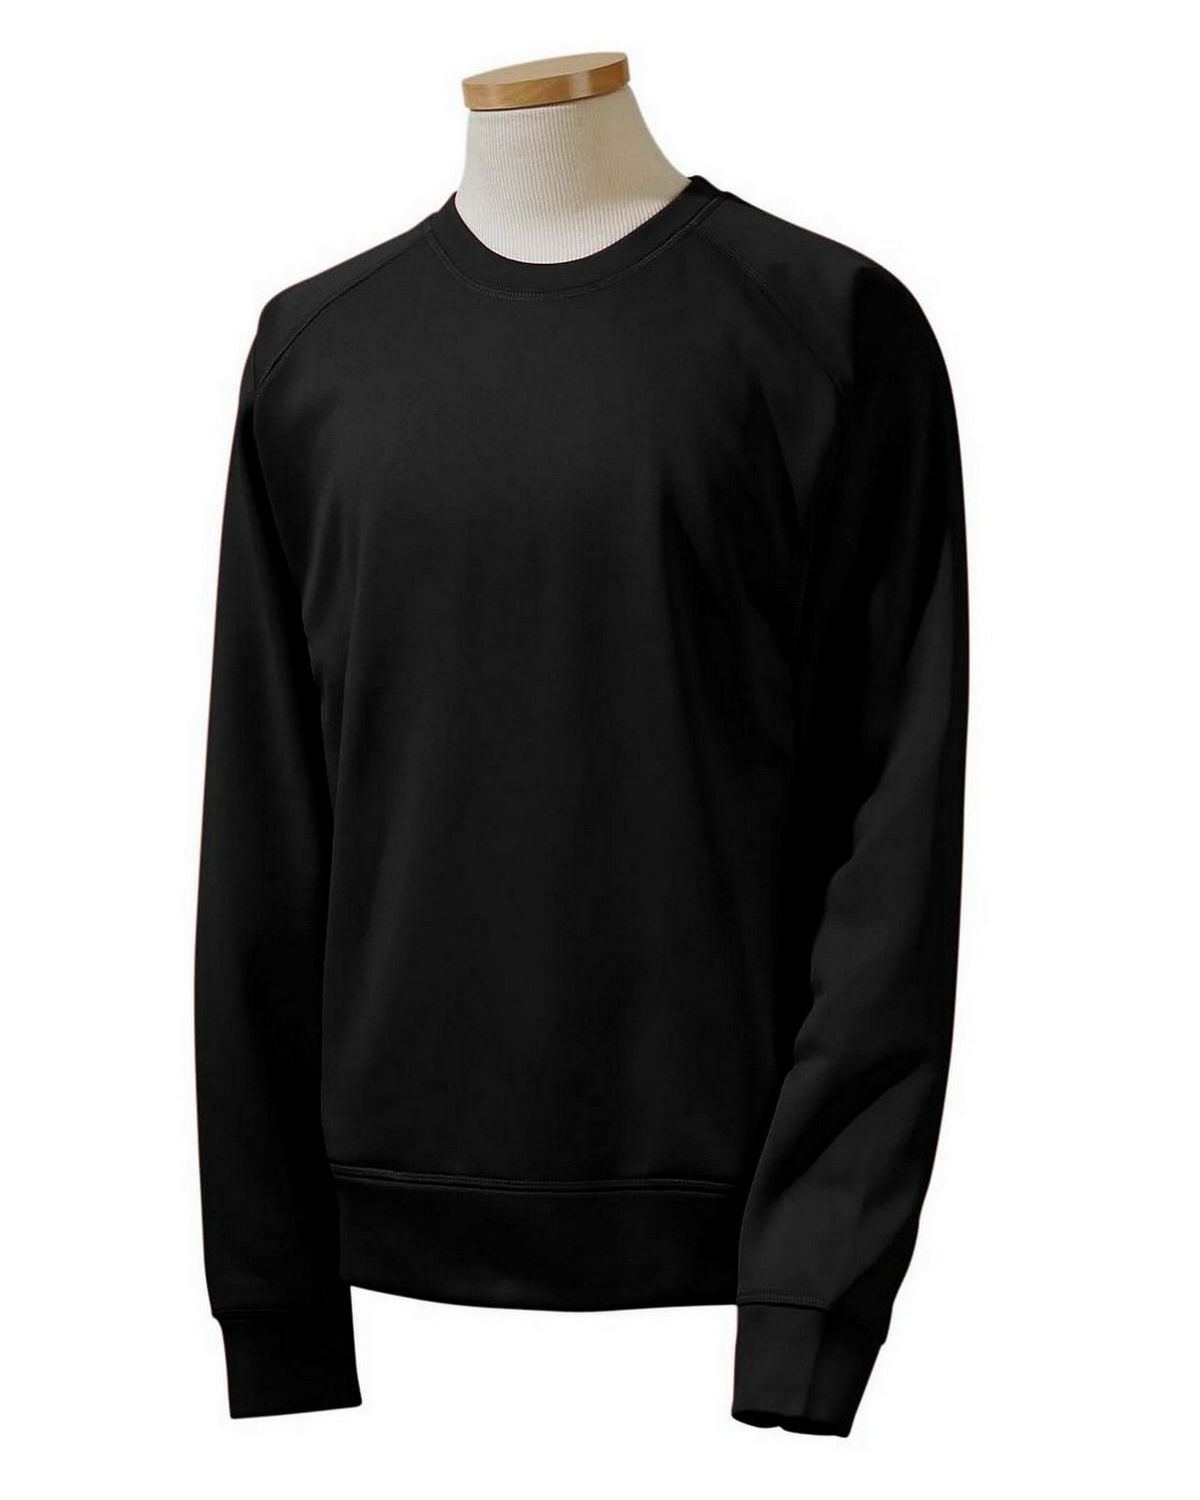 Russell Athletic 852EFM Tech Fleece Crew - Black - M 852EFM